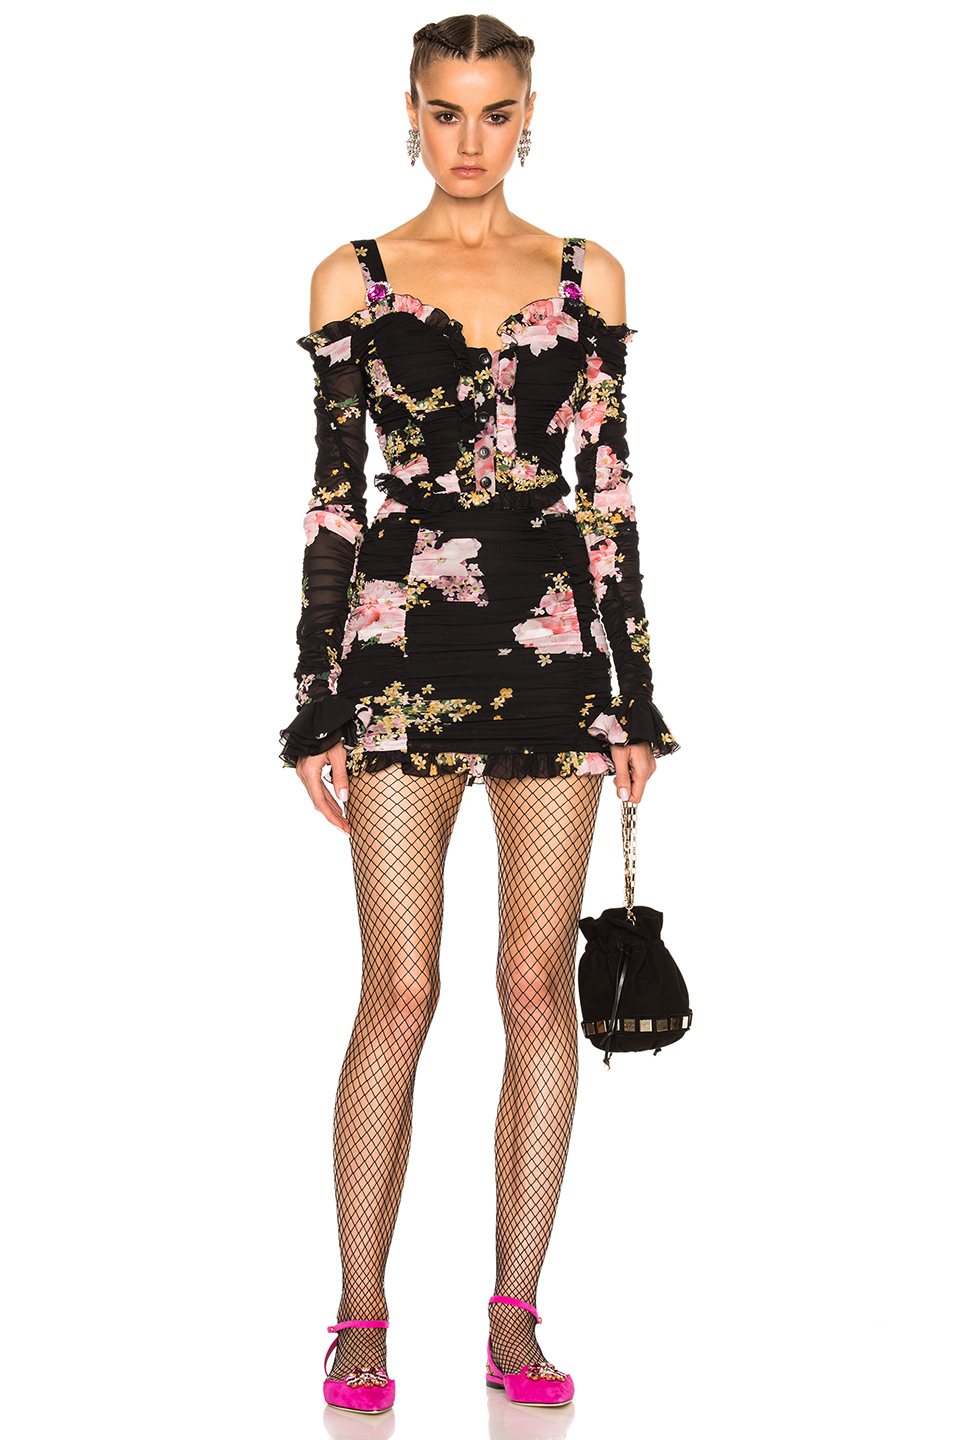 Alessandra Rich Floral Mini Dress in Black,Floral,Pink